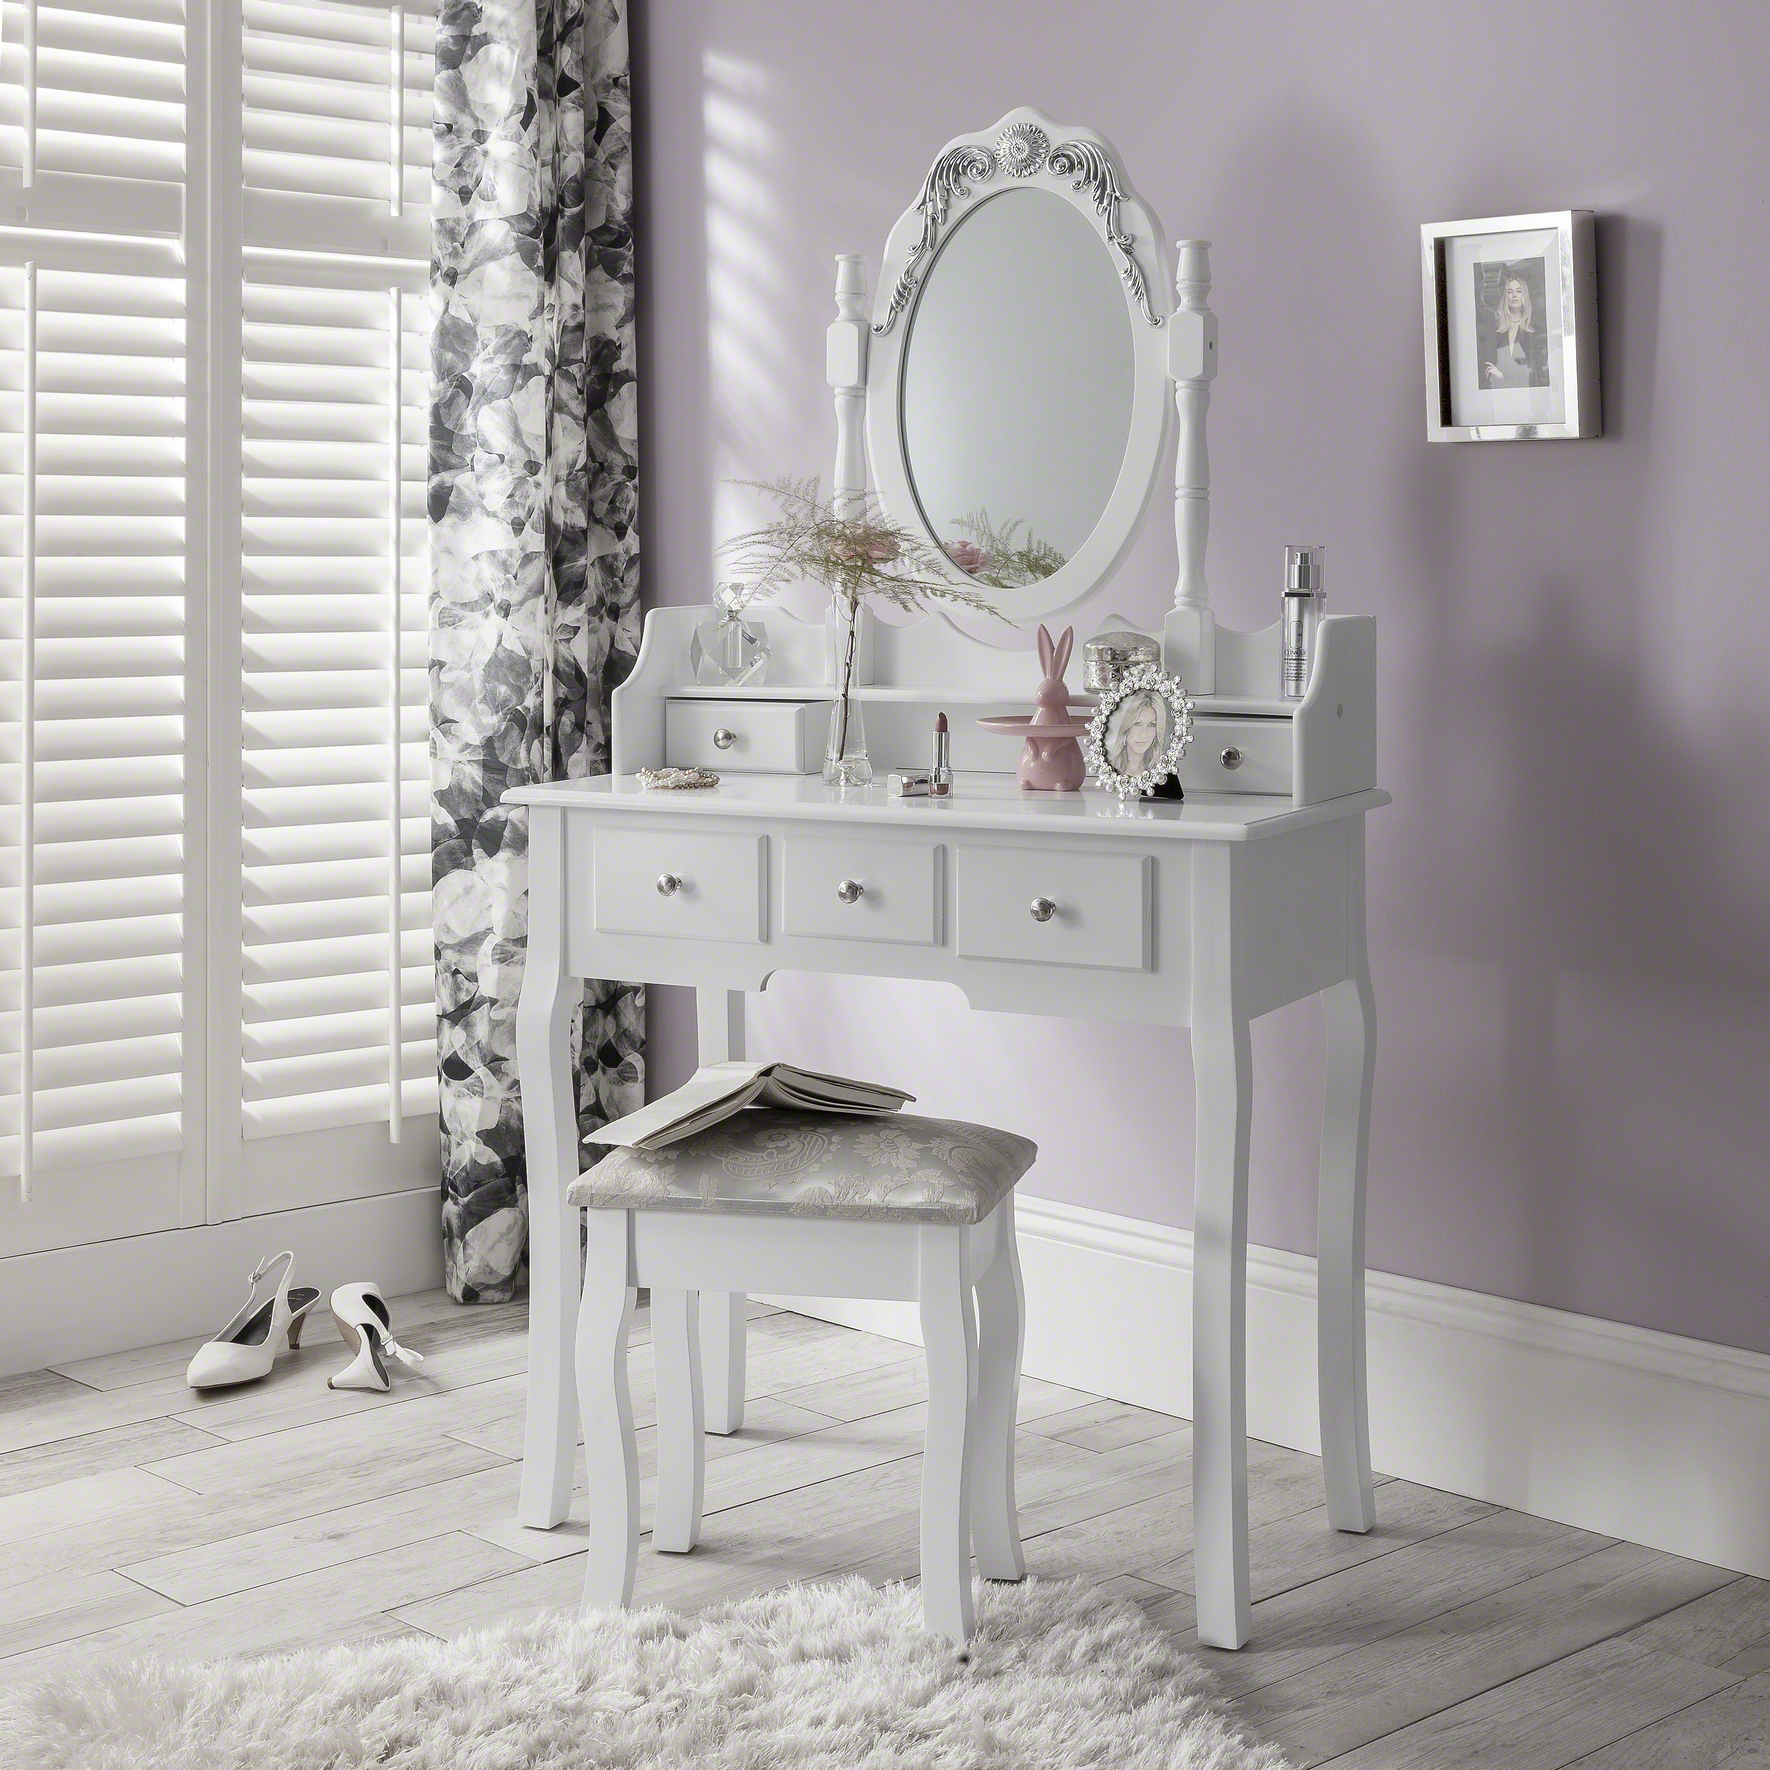 Capri white dressing table mirror and stool set dresser ebay - Amazon bedroom chairs and stools ...